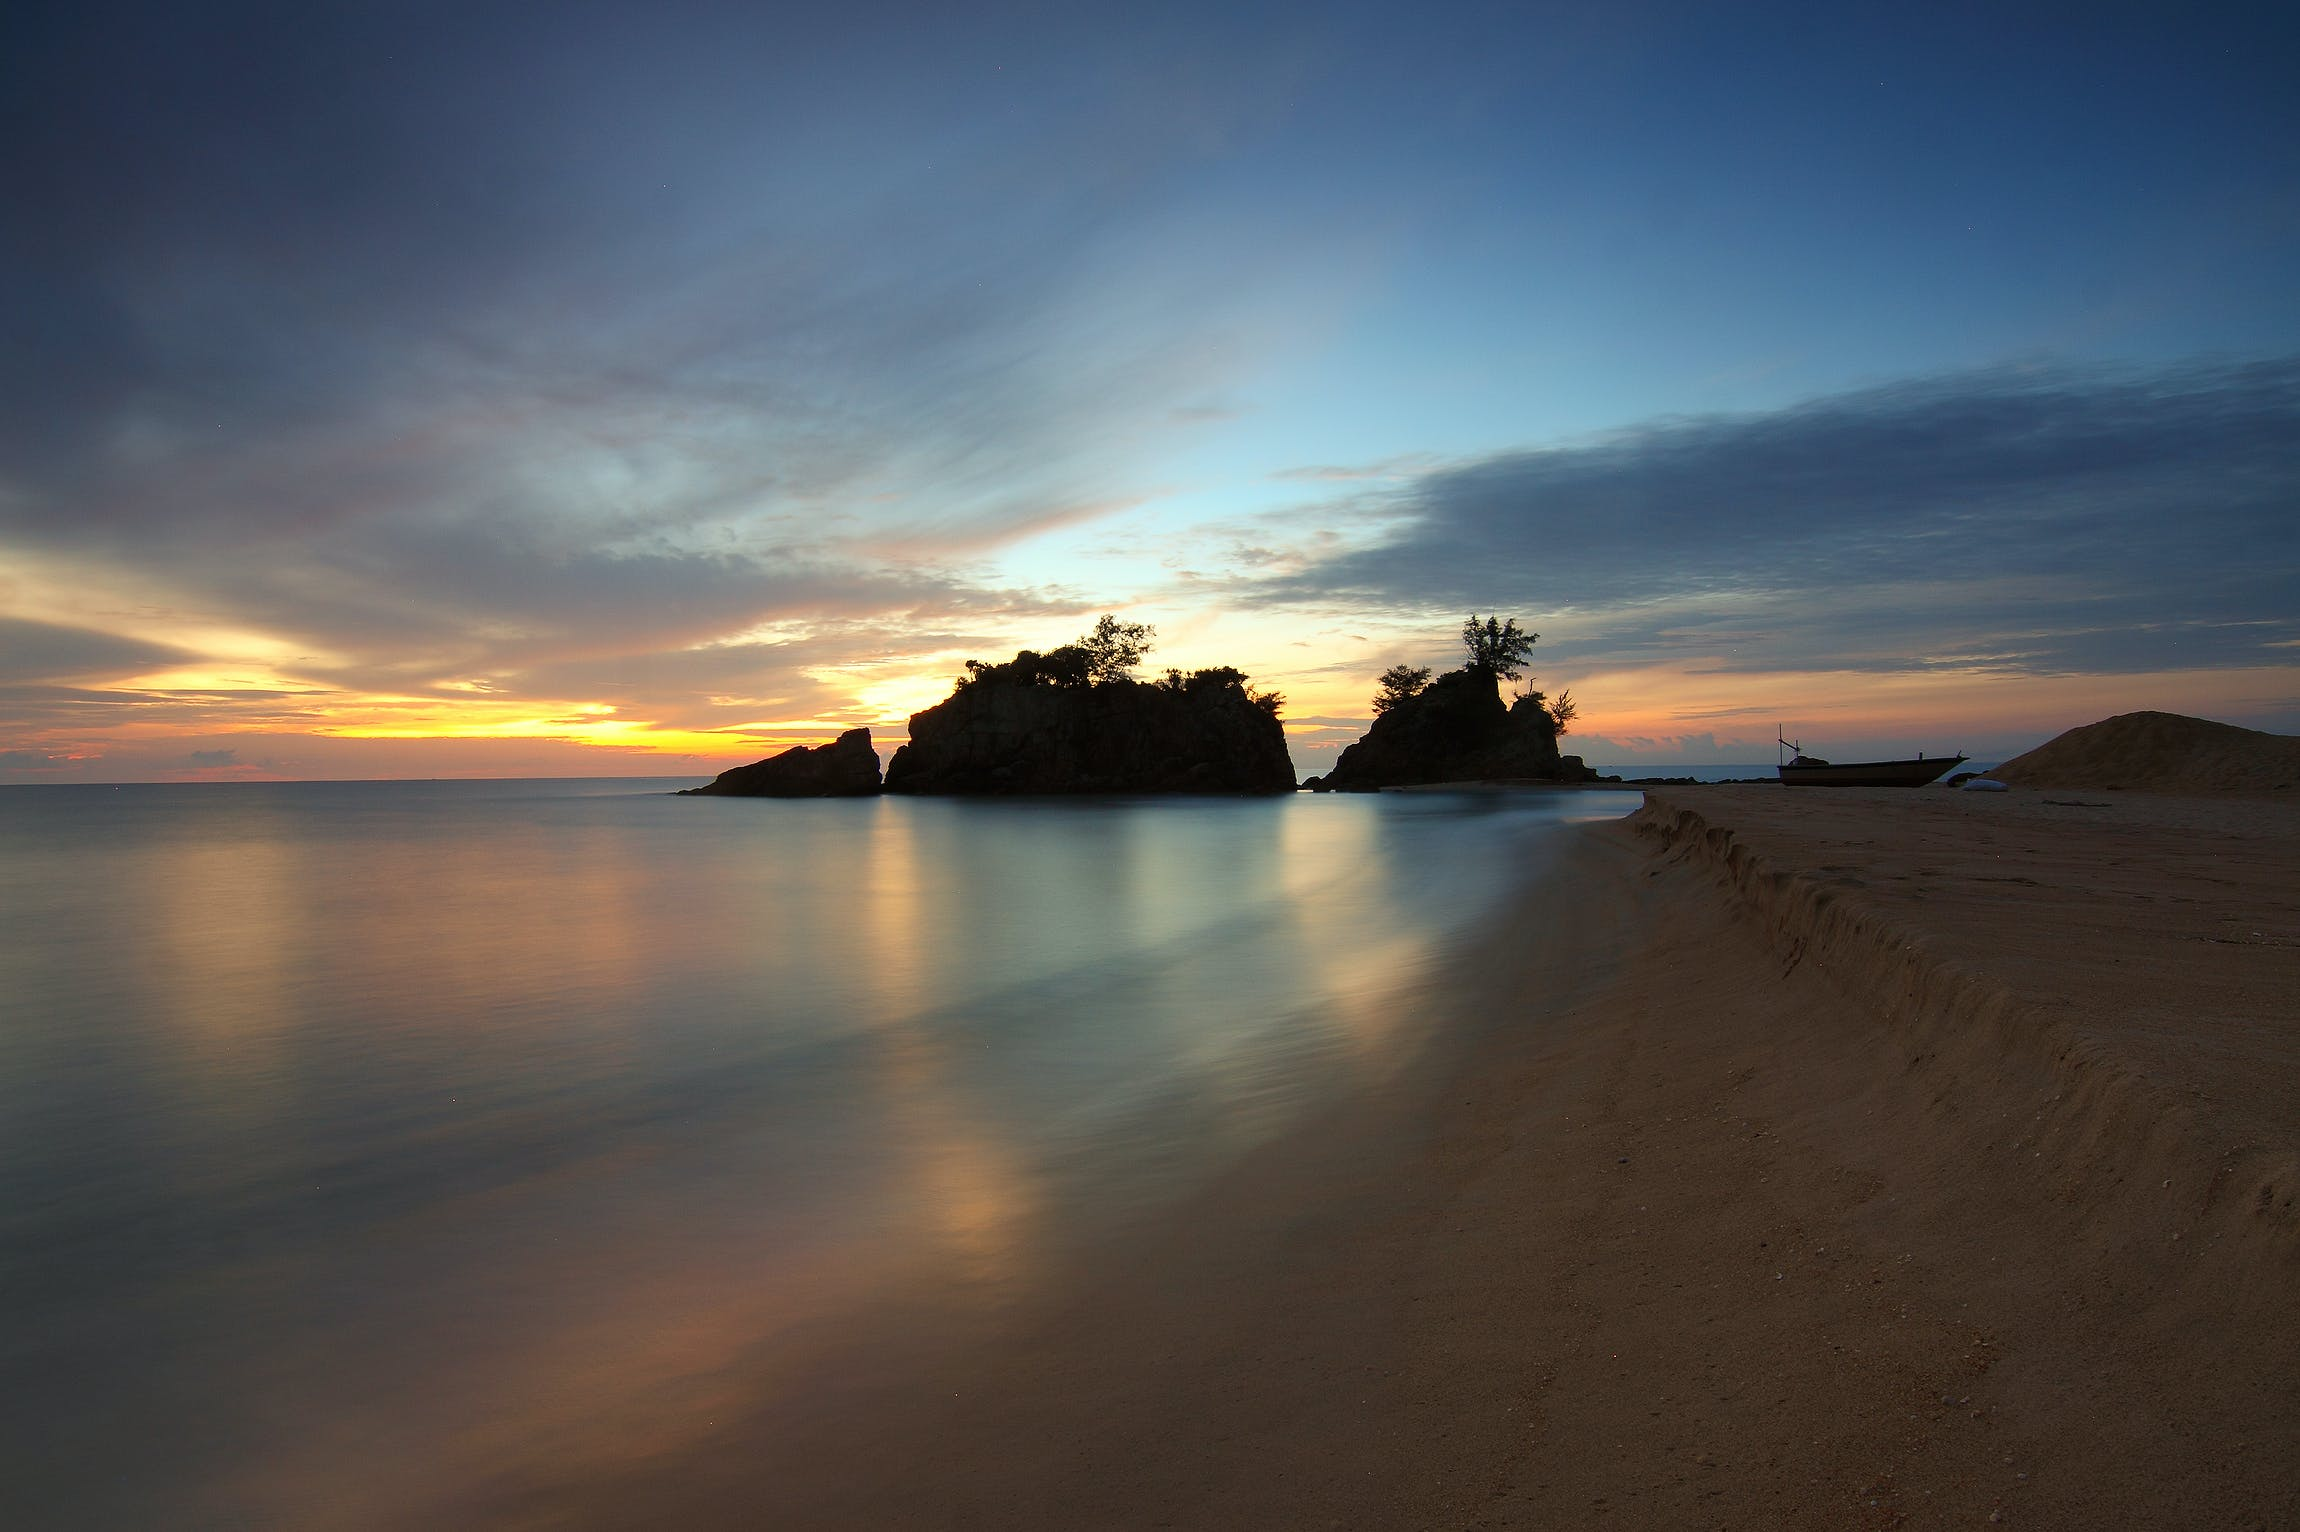 Calm Body of Water Near Shore With Silhouette of Rock Formation Against Setting Sun